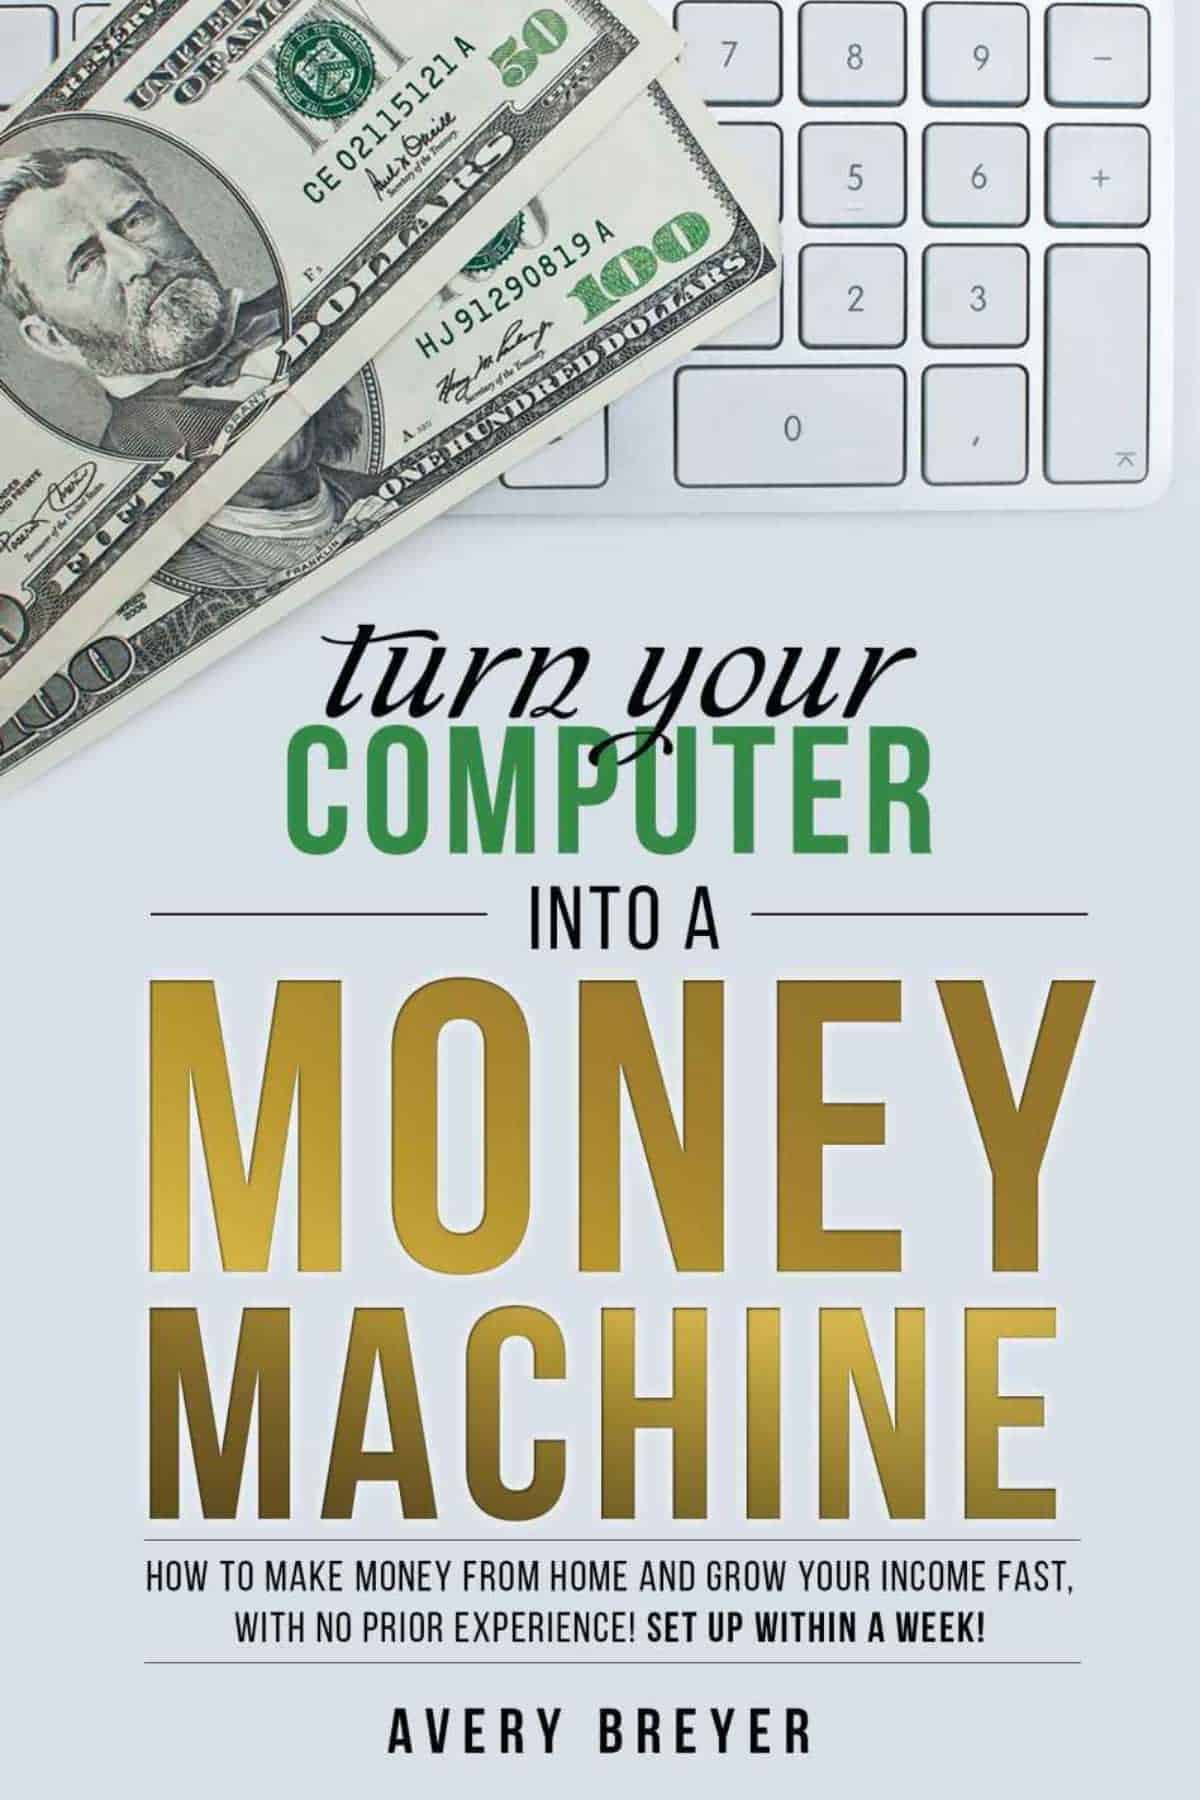 Turn Your Computer Into a Money Machine in 2018: How to Make Money From Home and Grow Your Income Fast, With No Prior Experience! Set Up Within a Week! by Avery Breyer | Amazon's Best Selling Tech Kindle eBooks